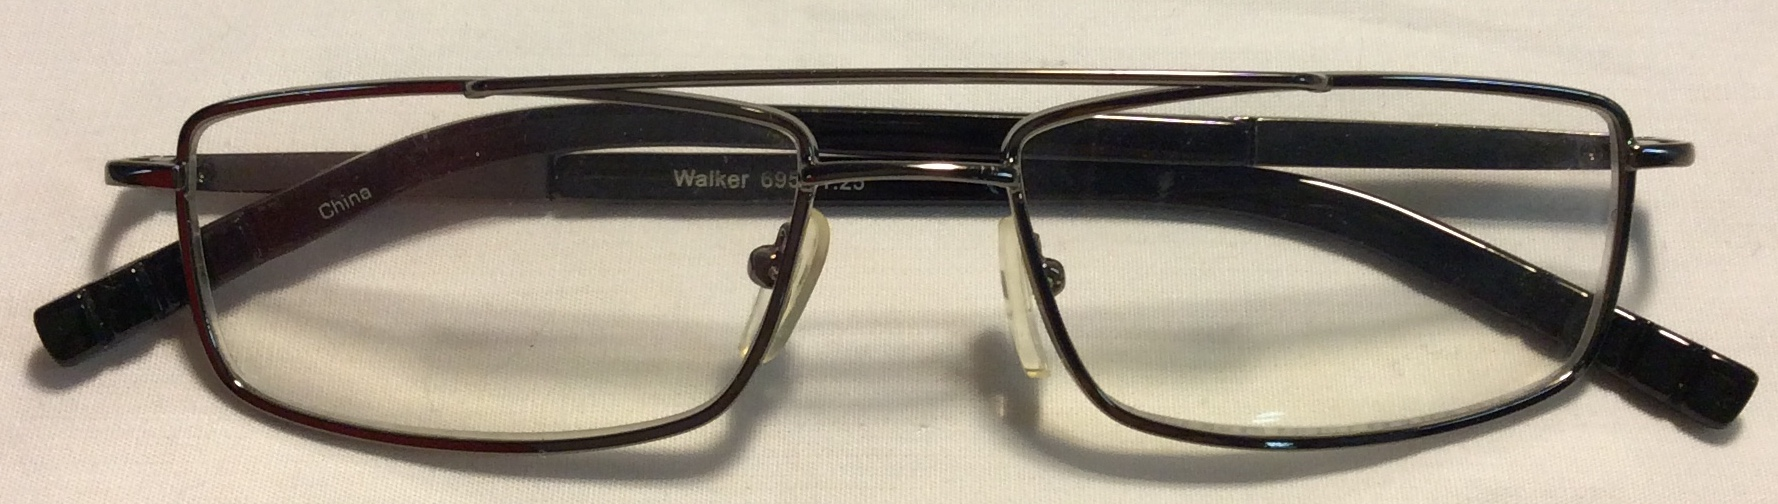 Silver metal frames, long black